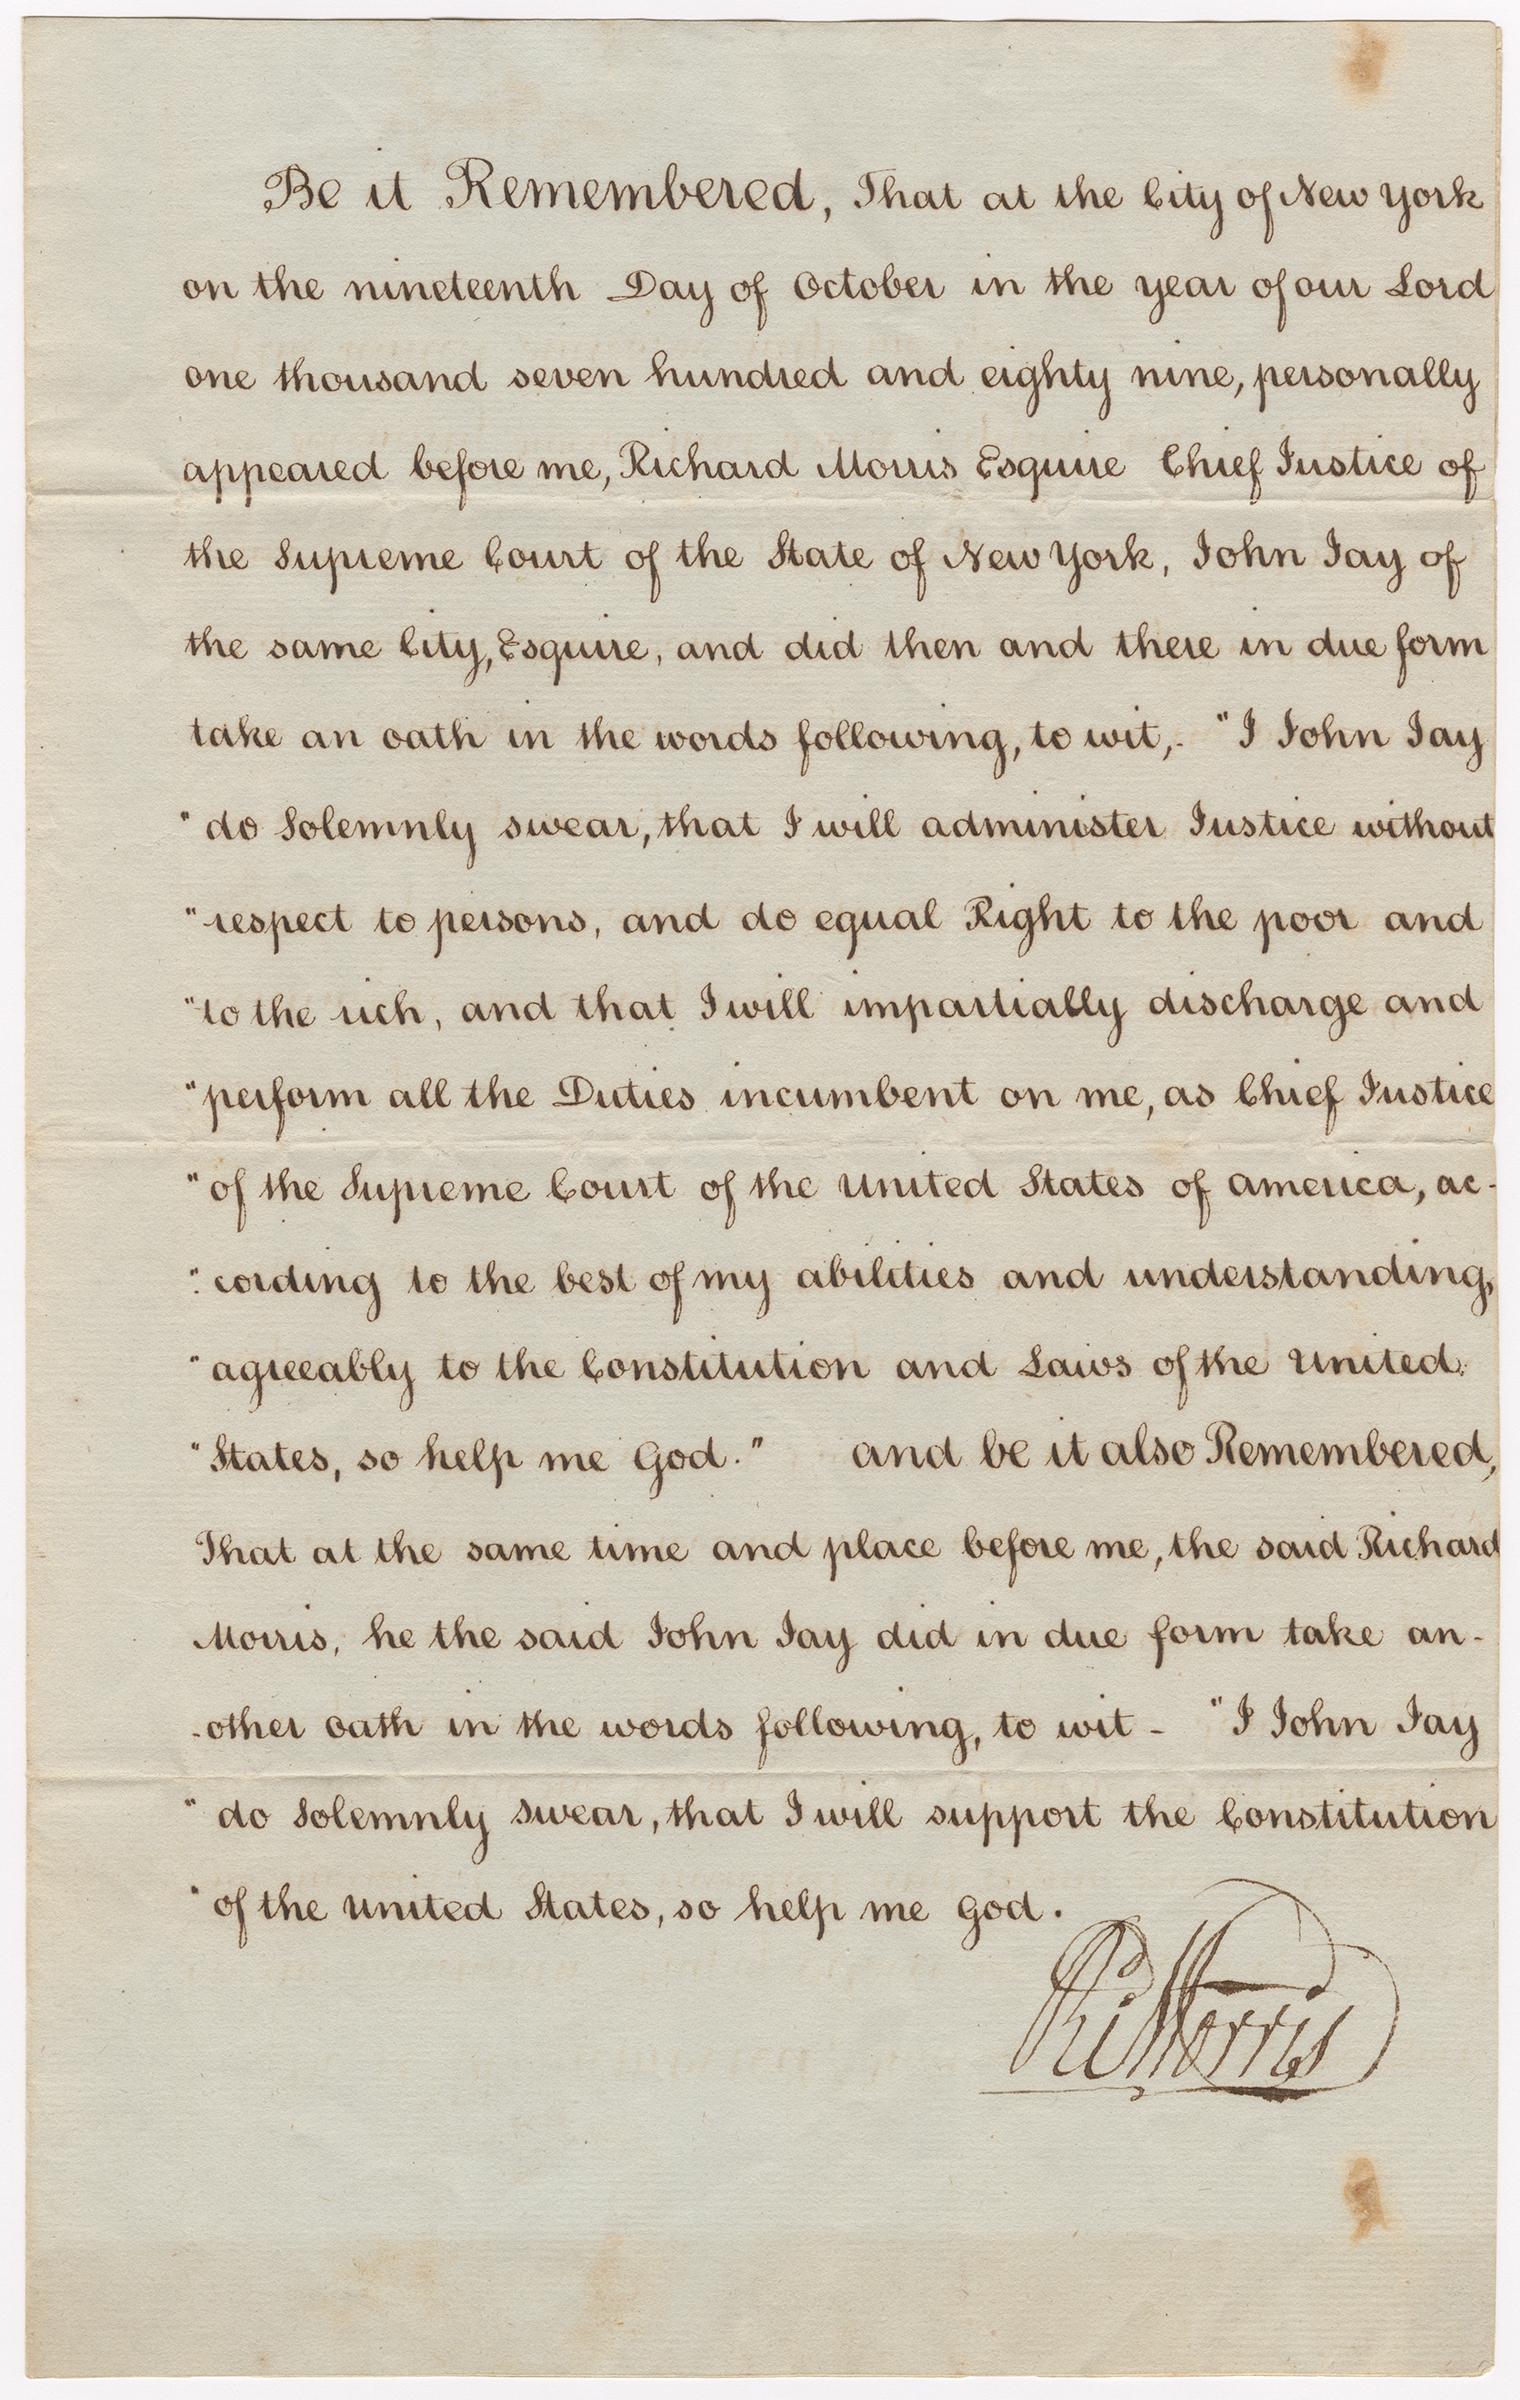 John Jay's Oath as Chief Justice of the Supreme Court, attested to by Richard Morris, front